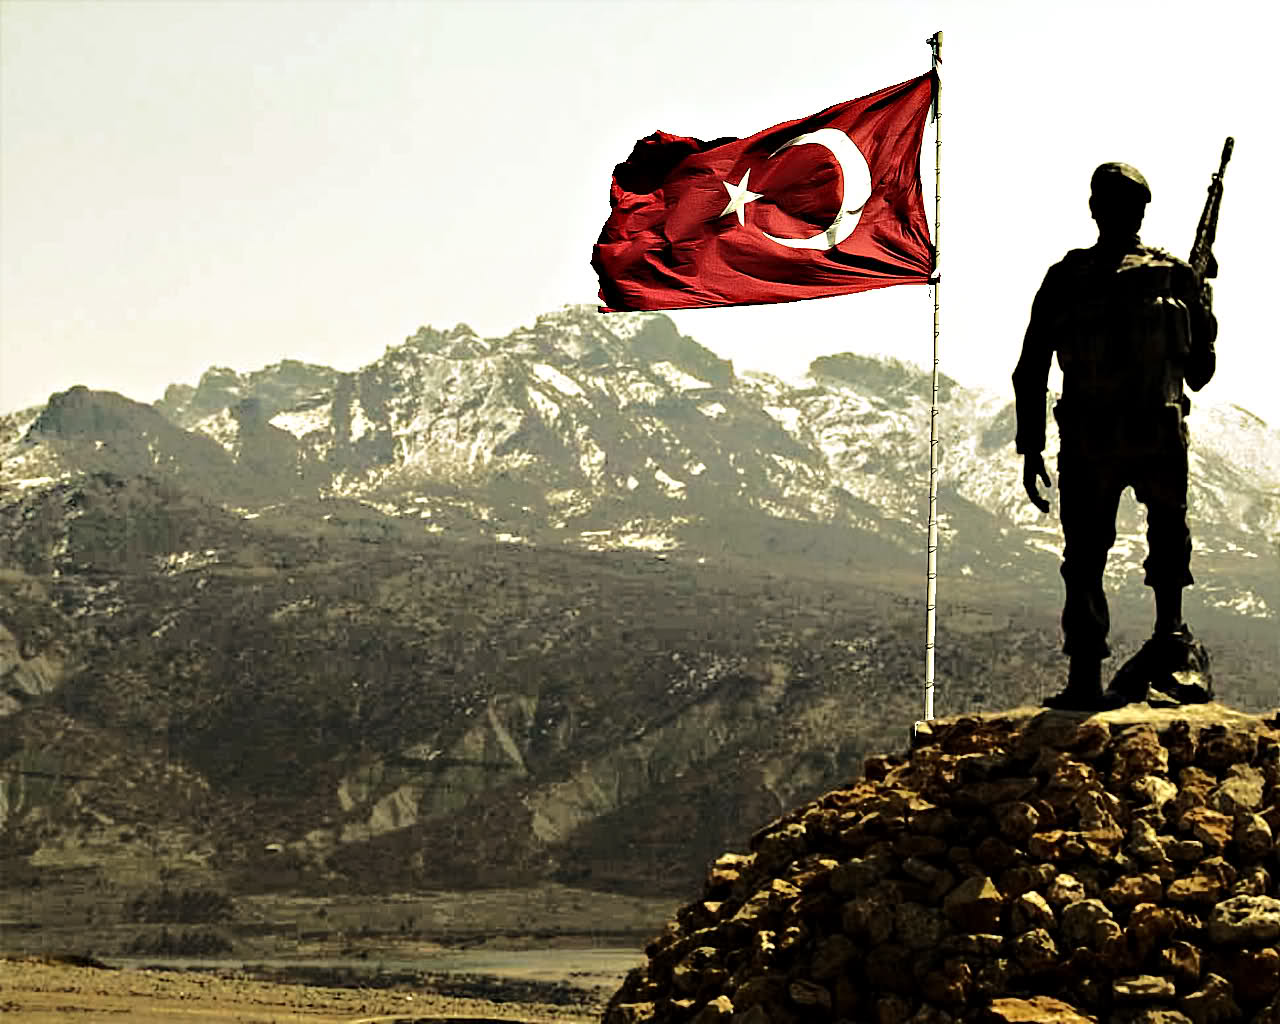 Türk asker wallpaper 1